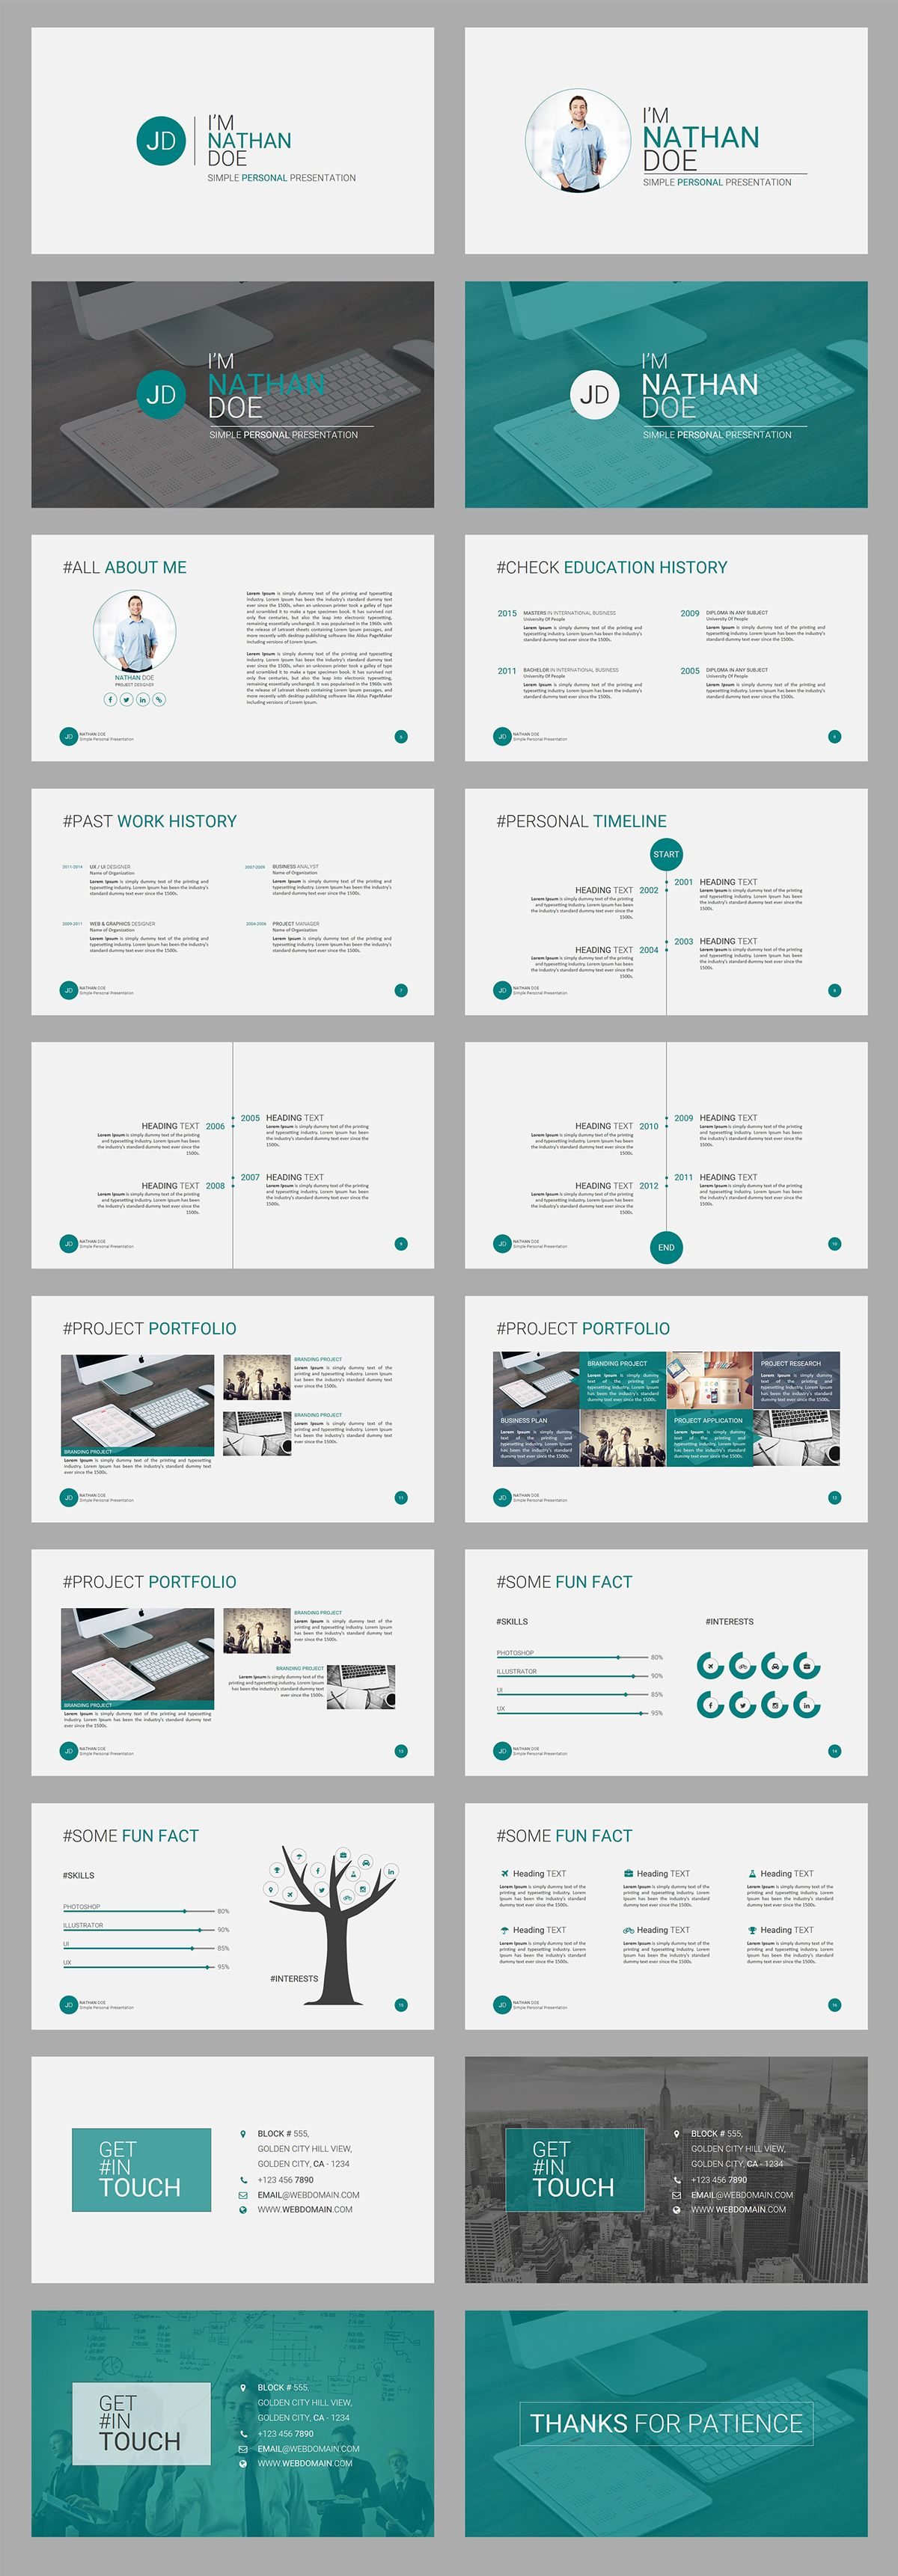 jd - personal powerpoint presentation template on behance, Presentation templates